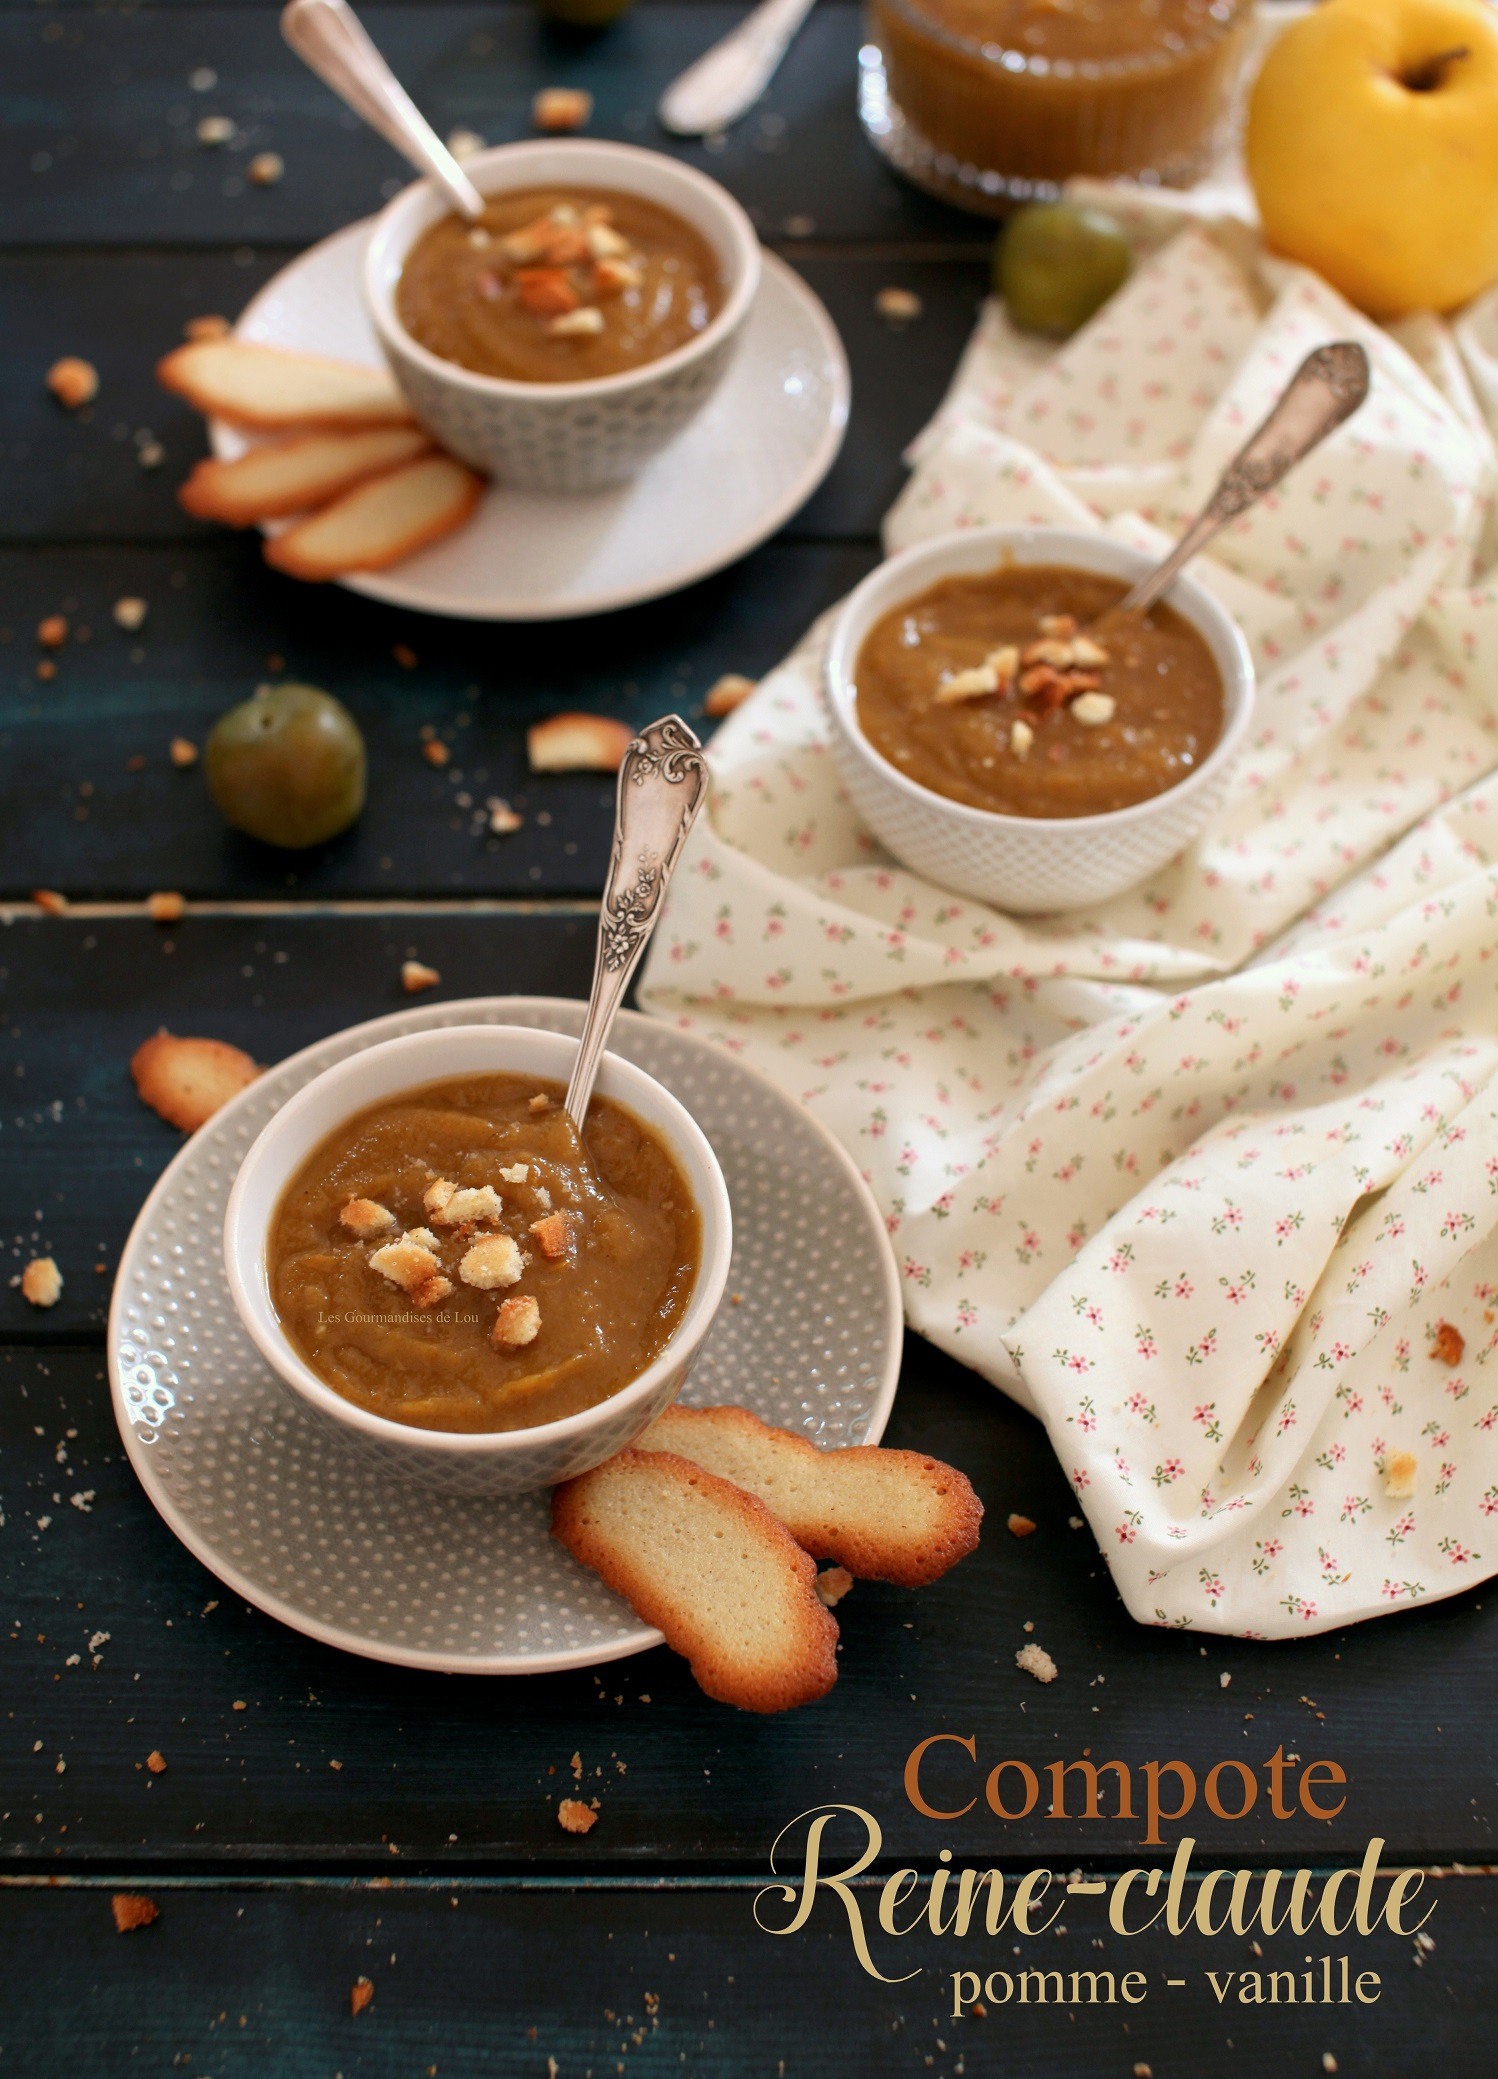 compote-reine-claude-pomme-vanille